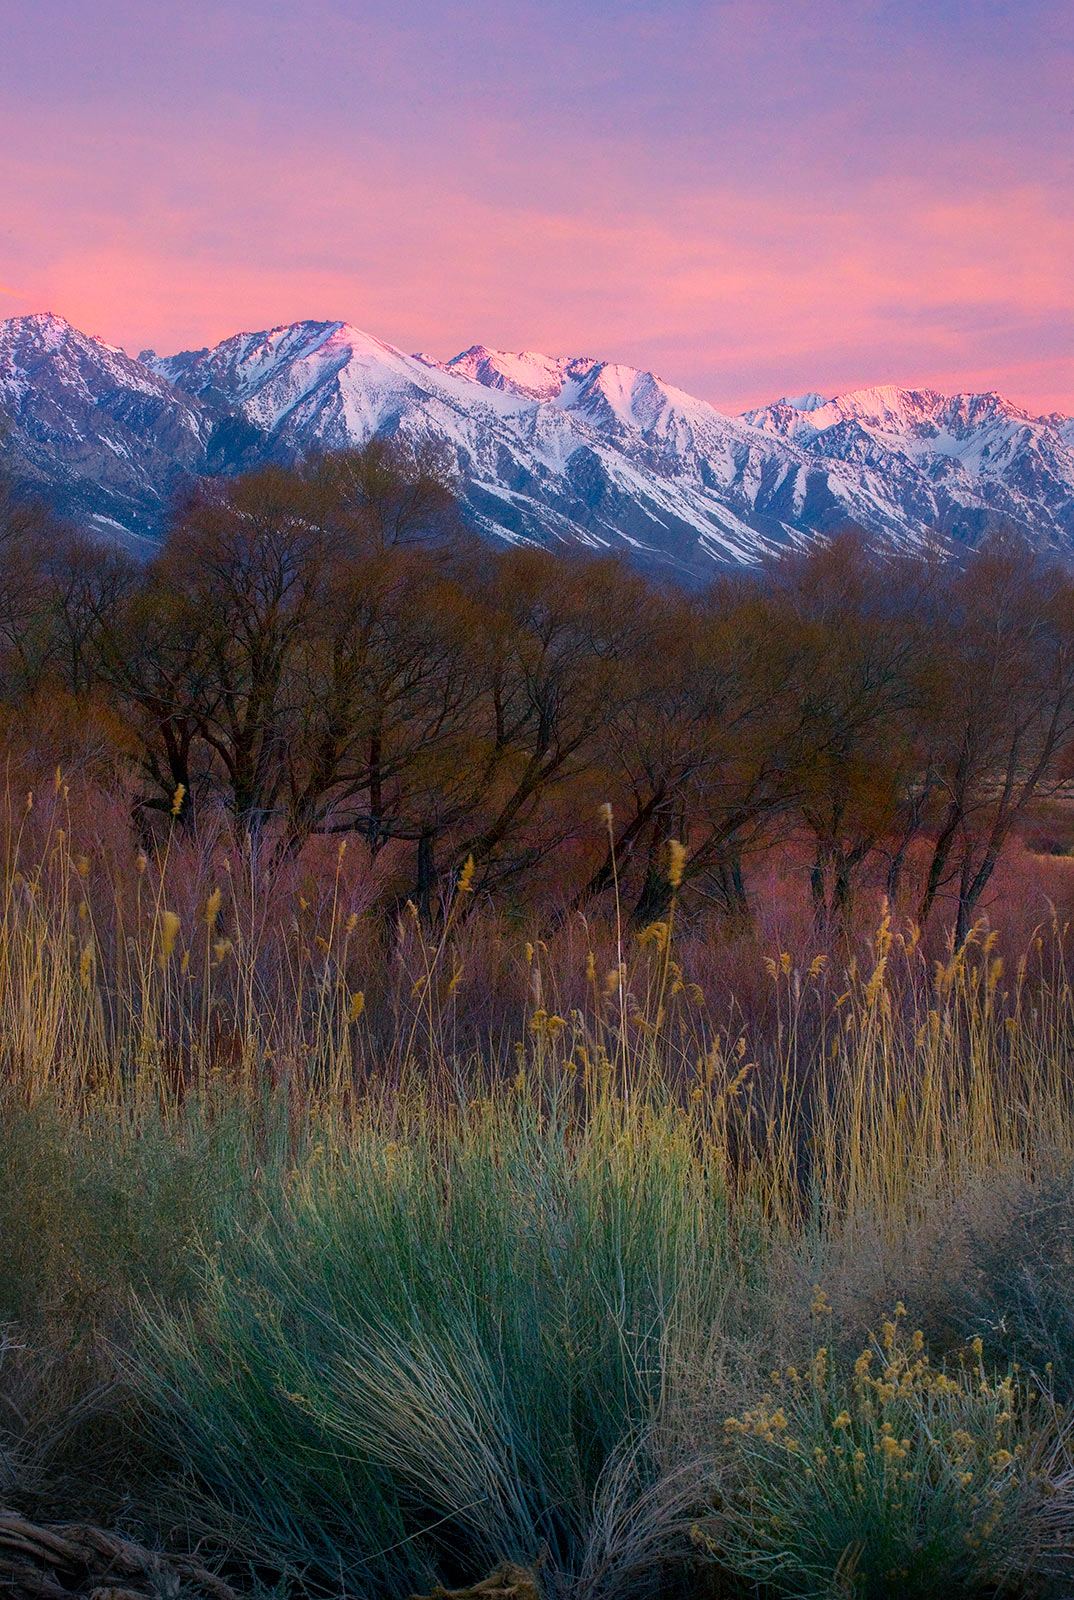 Colorful fields of tall grasses, Sage, Willow and Cottonwoods at the foot of the Eastern Sierra Range greet the sunrise.